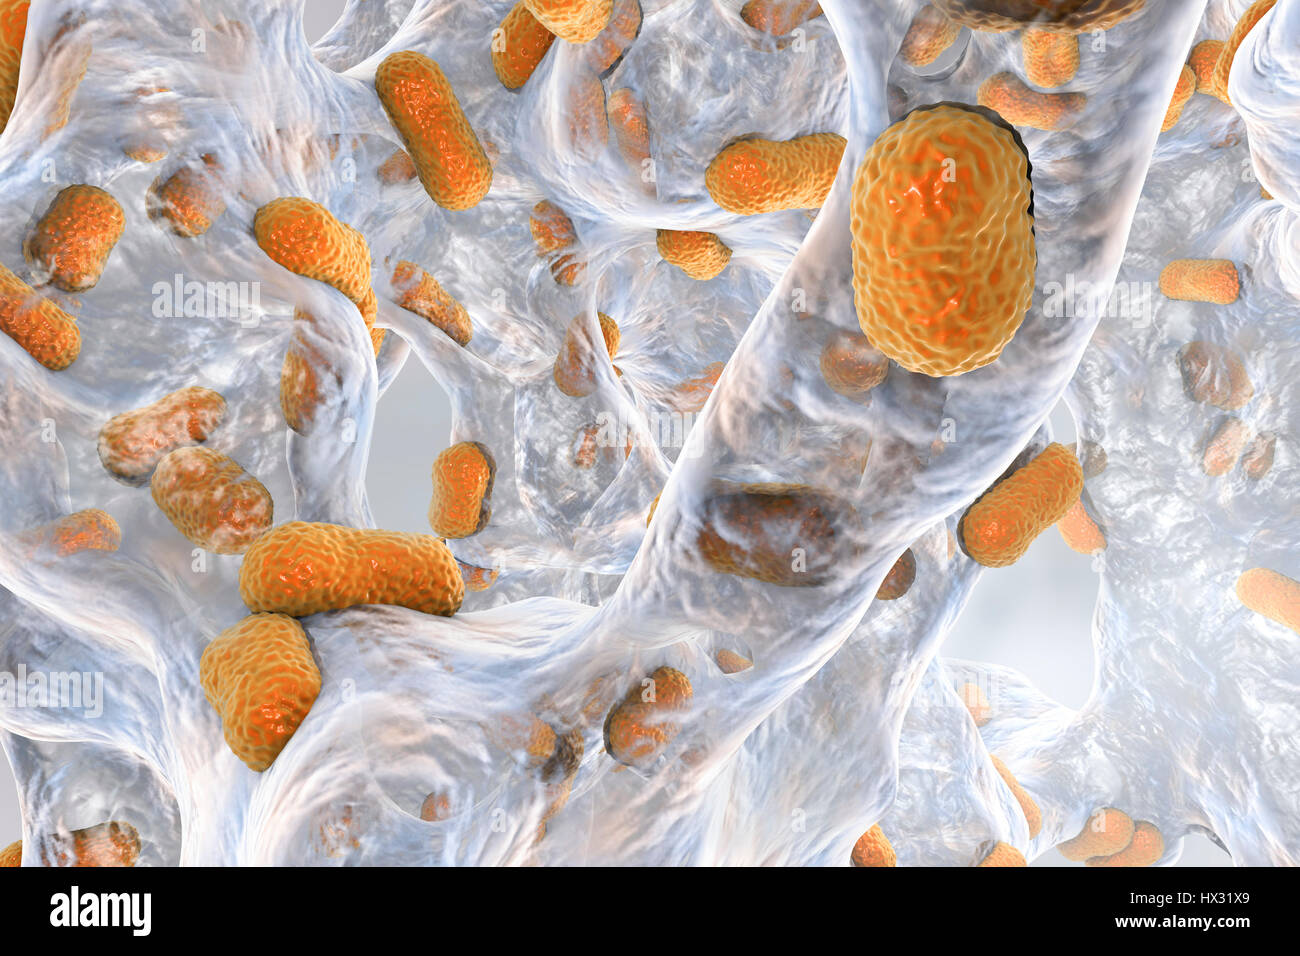 List of Bacterial Diseases, Infections Acinetobacter baumannii symptoms pictures